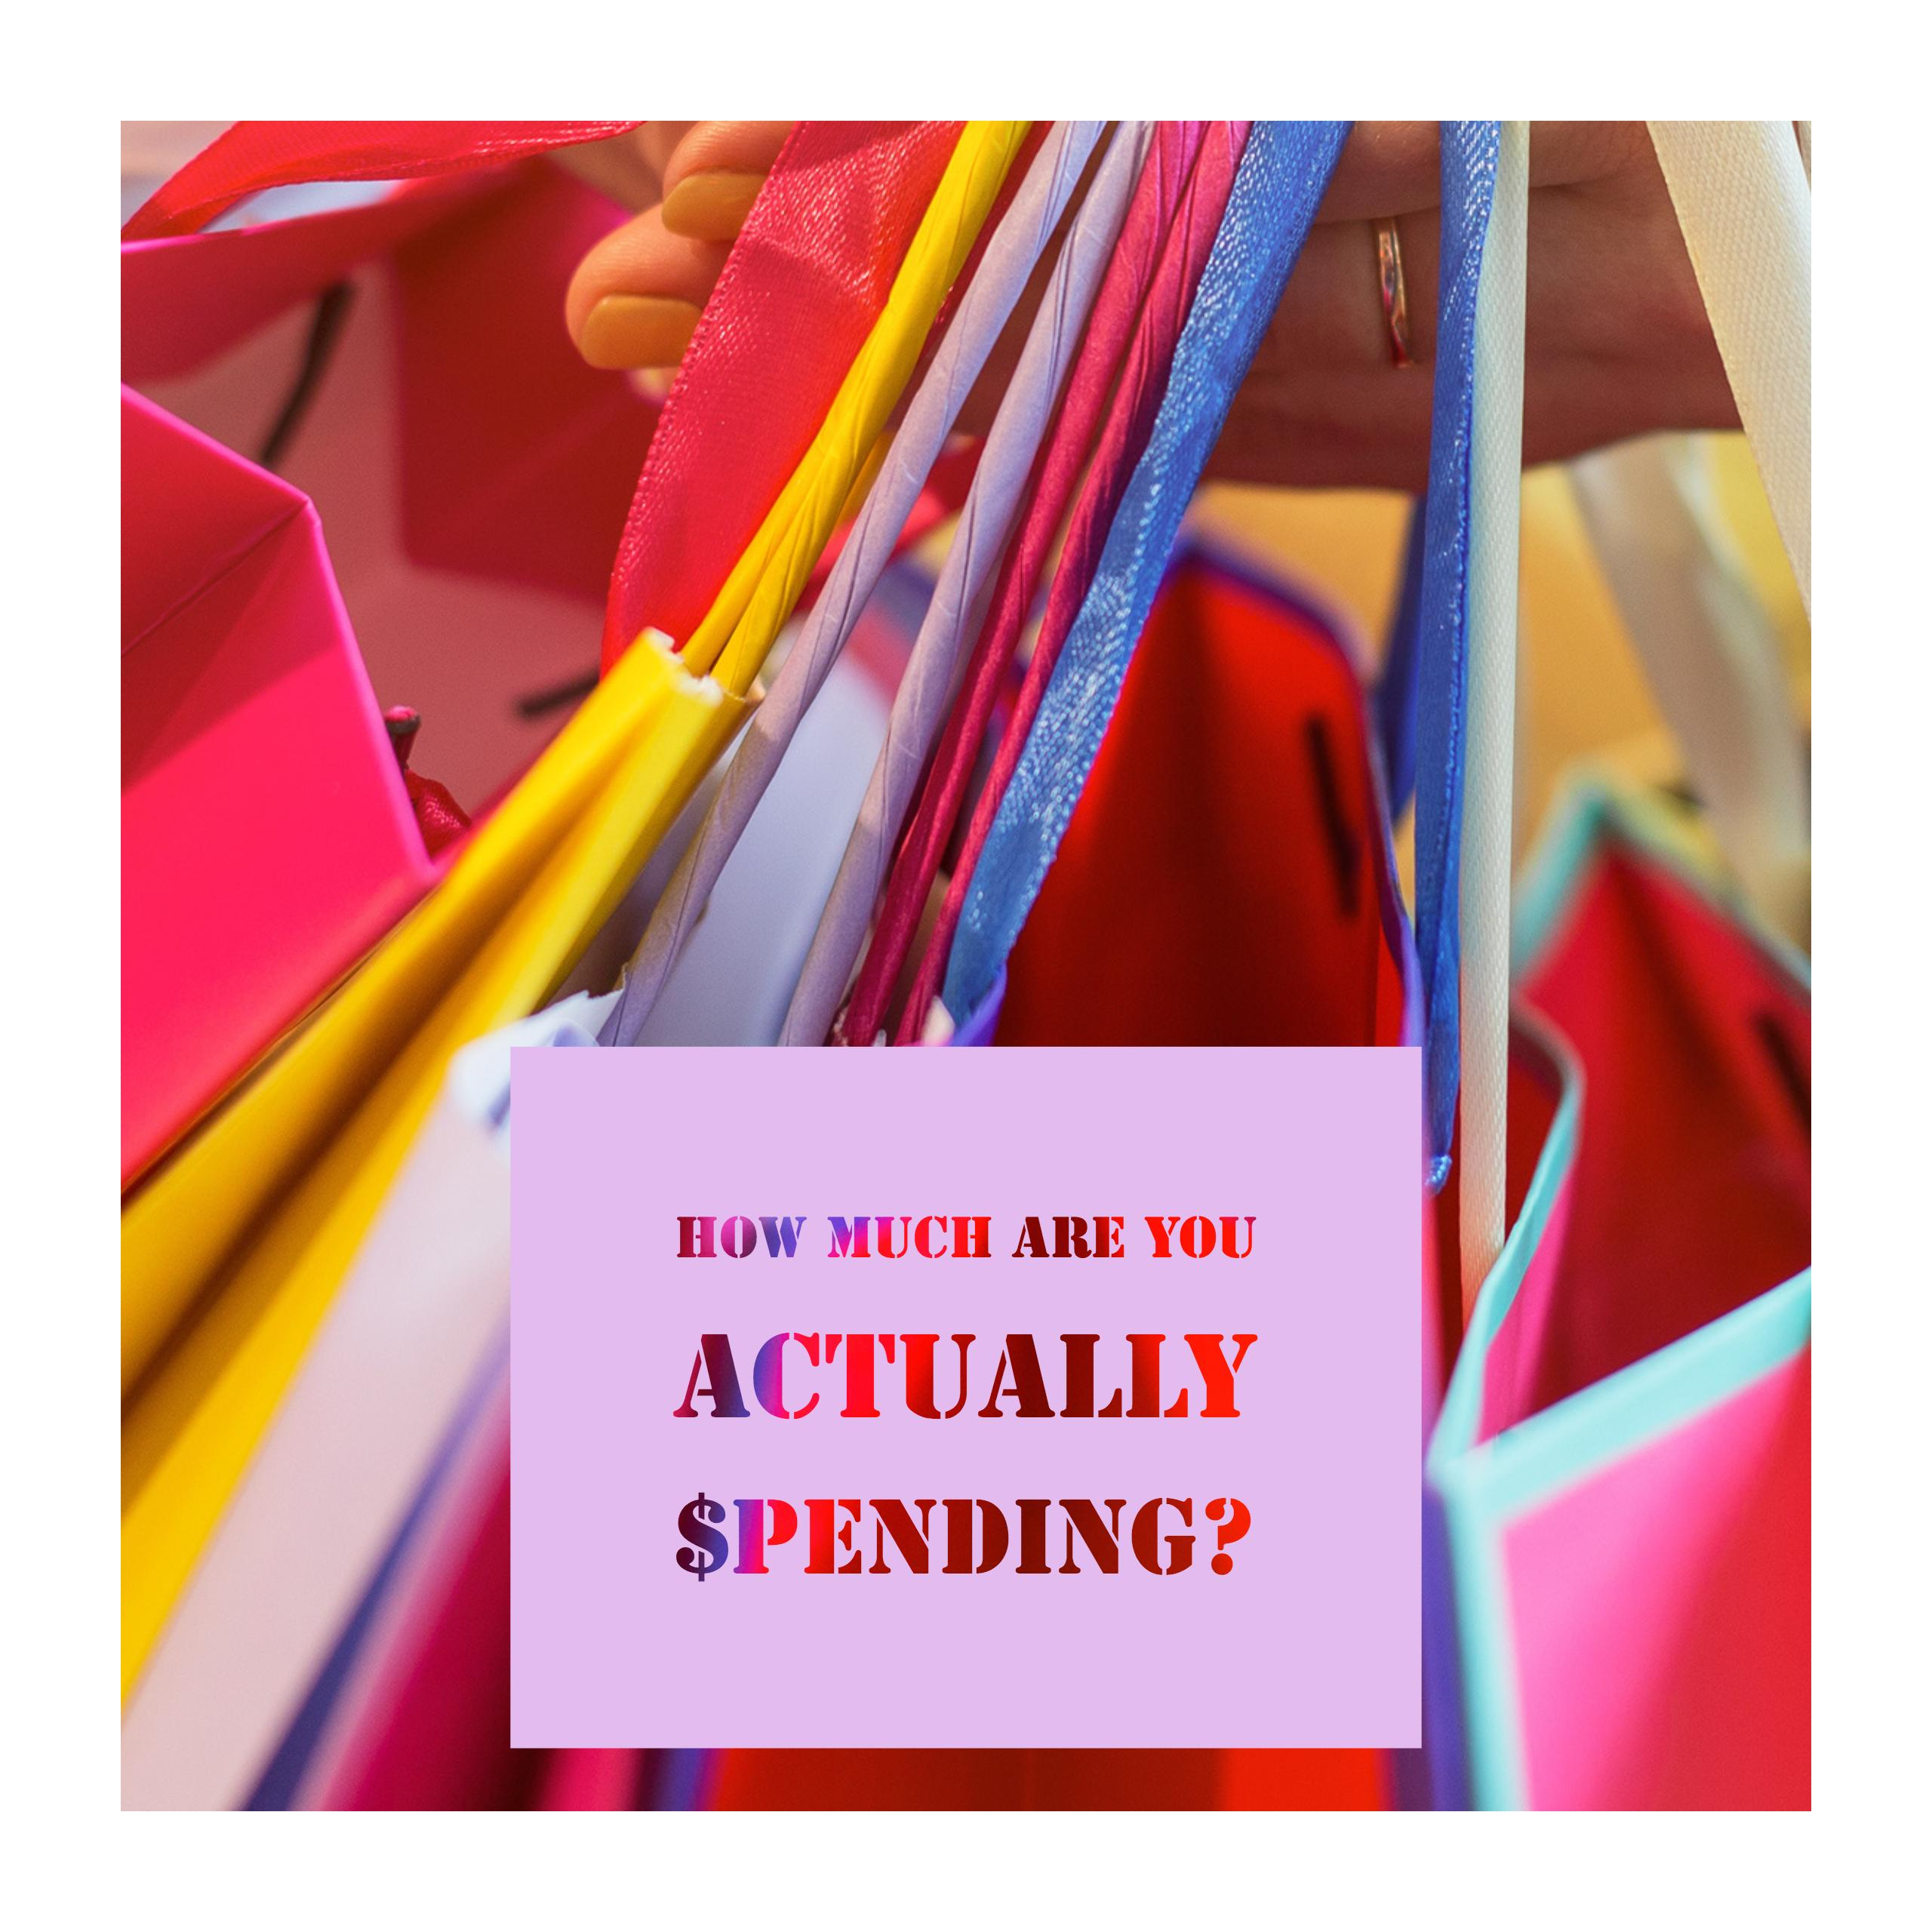 How Much Are You ACTUALLY Spending?